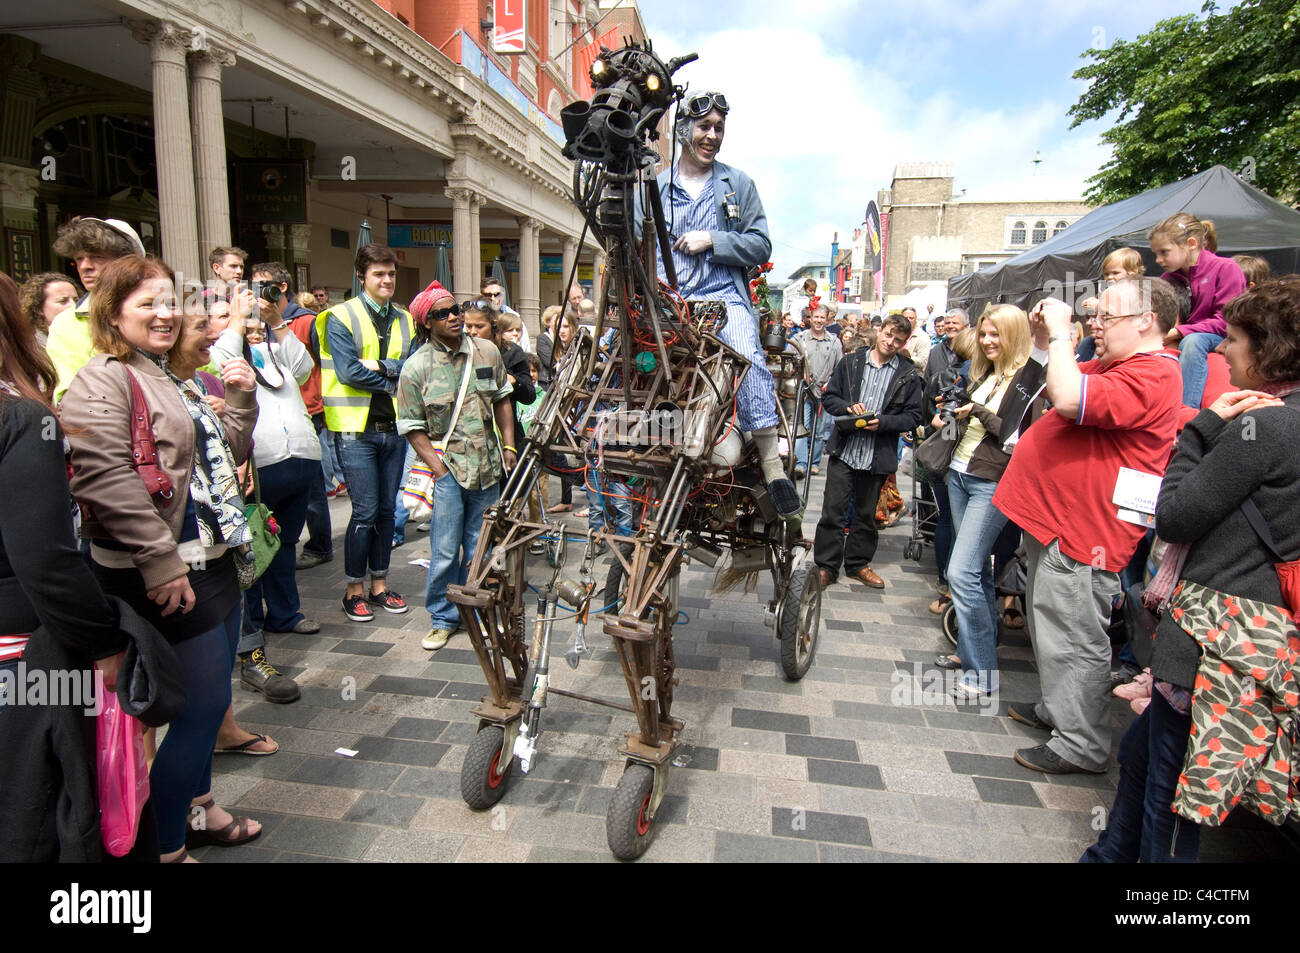 A street entertainer rides his recycled metal horse during the 2011 Brighton Festival Fringe - Stock Image